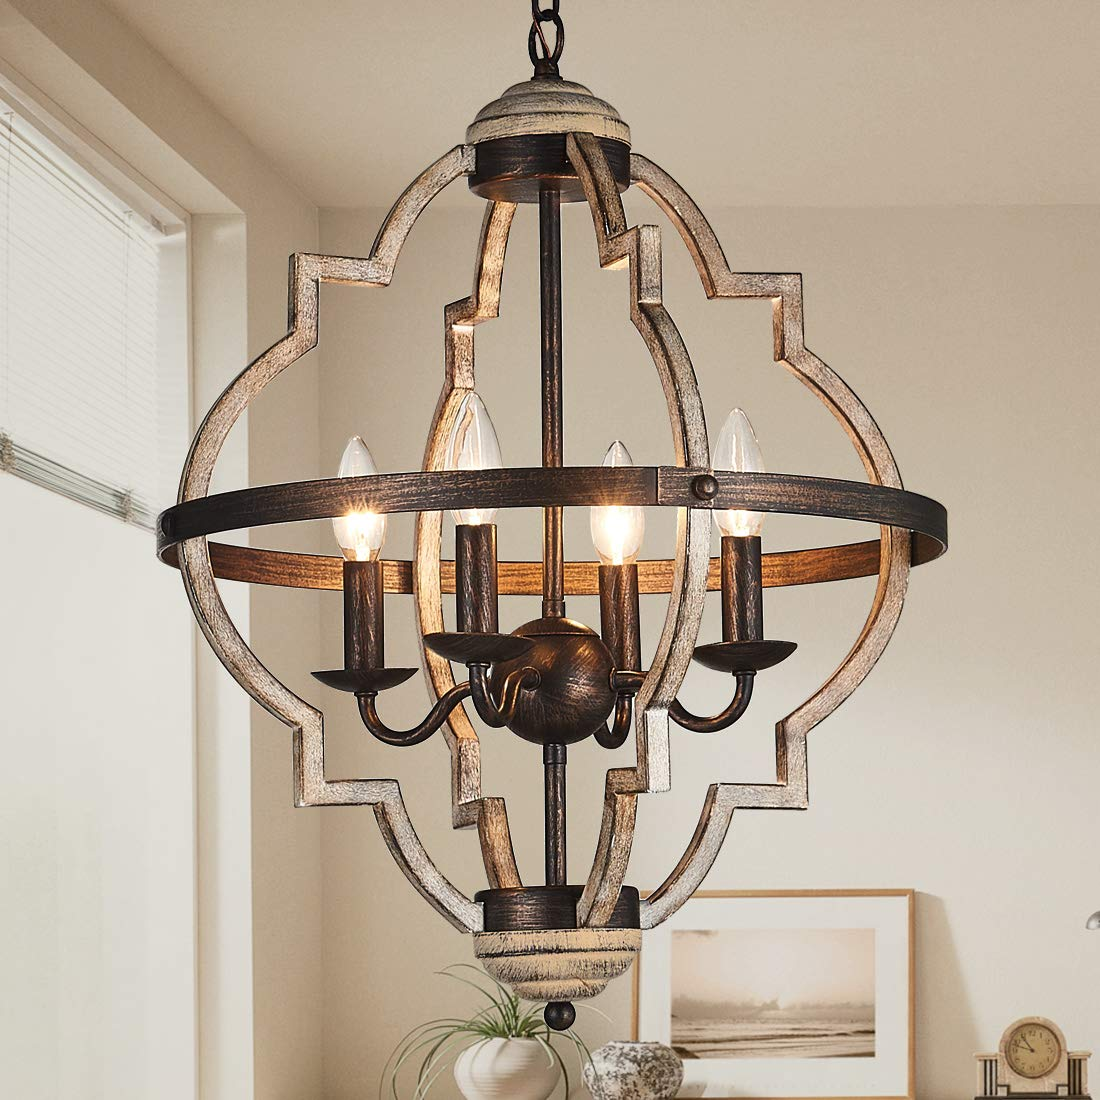 TZOE Orb 4-Light Metal Chandelier,Rustic Vintage Chandelier,Stardust Finish,Foyer Light,Adjustable Height,Dining Room Lighting Fixtures Hanging,Living Room Light,Kitchen Chandelier UL Listed by TZOE